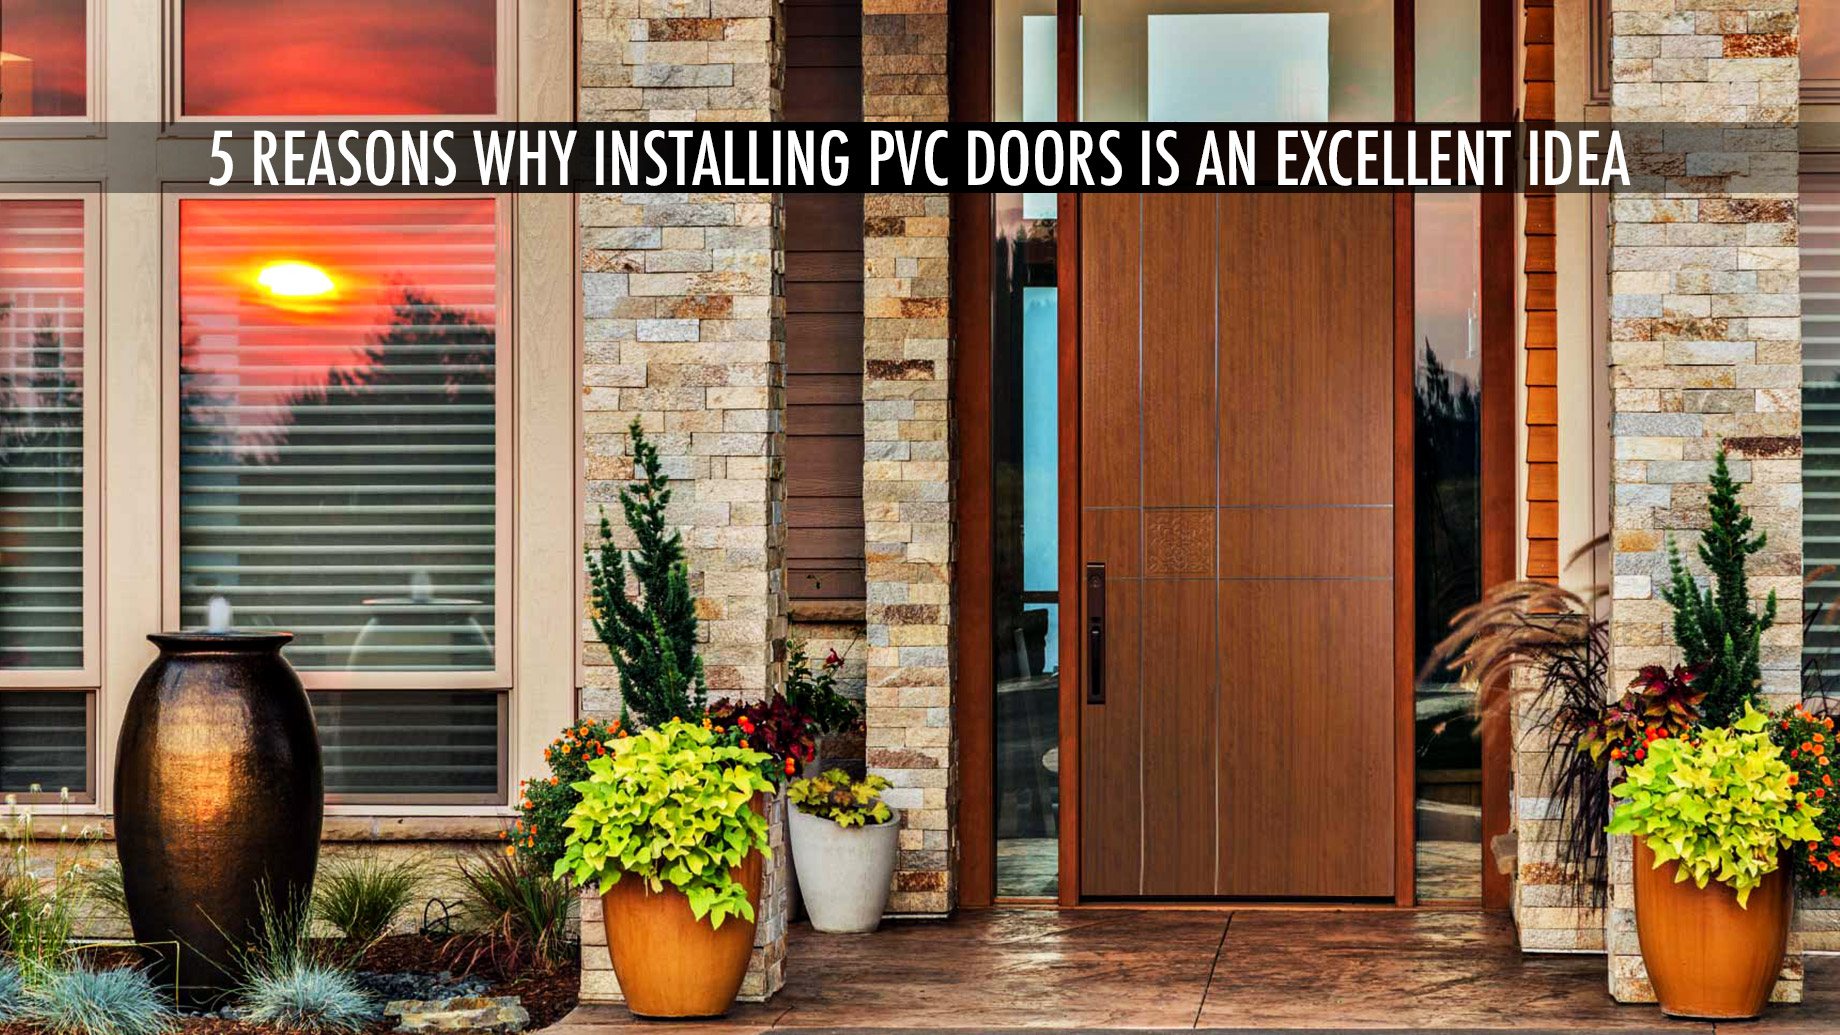 5 Reasons Why Installing PVC Doors Is An Excellent Idea